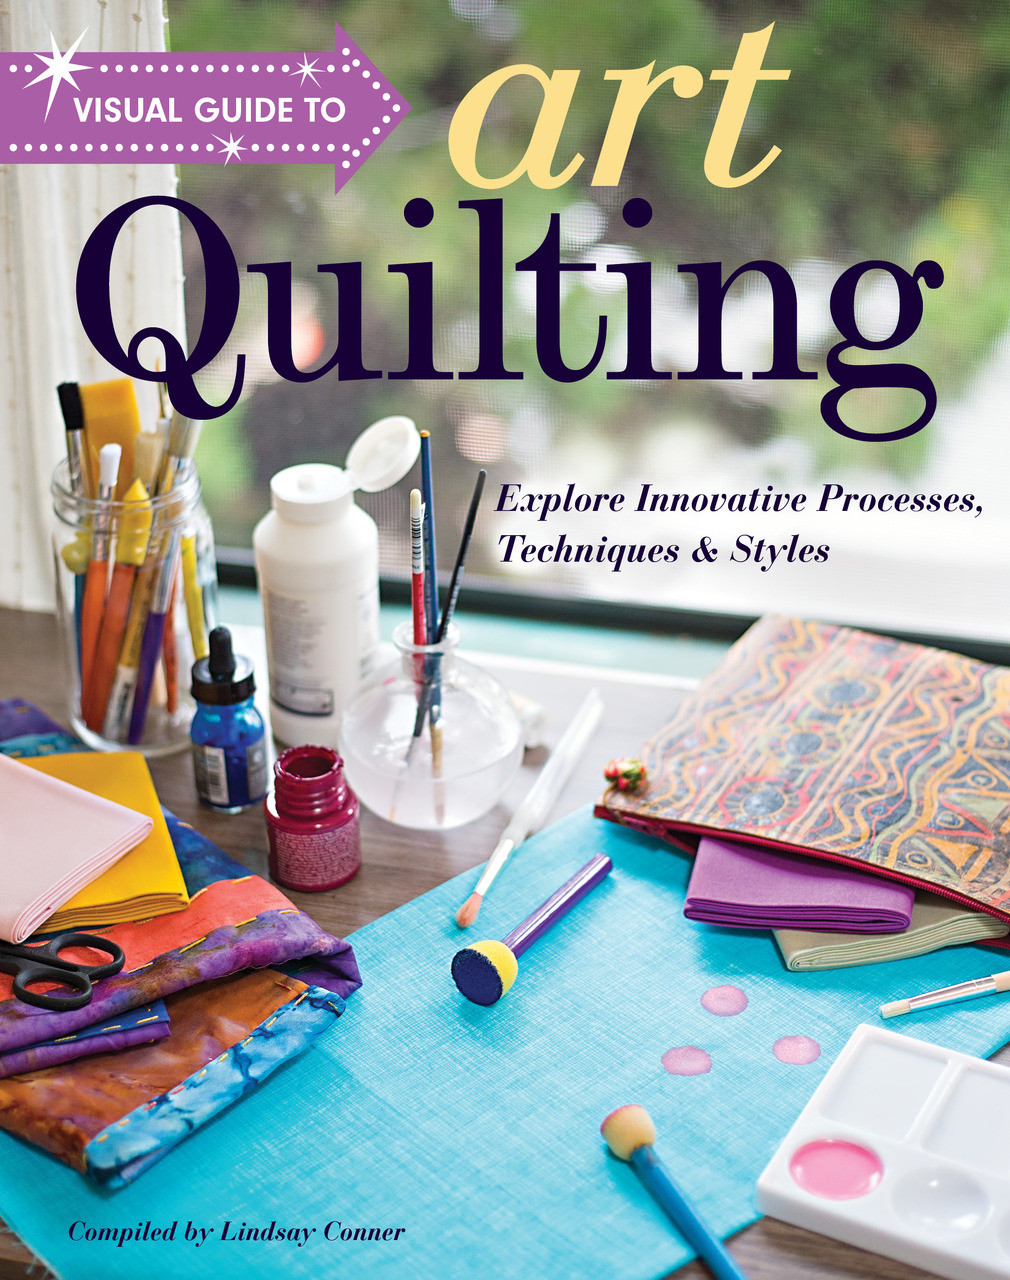 Start on the path to art quilting success! For anyone inspired to make art quilts, this visual reference will help you gain the practical tools and inspiration you need to translate your ideas to fabric. Get an intro to surface design (including dyeing and printing on fabric), embellishing quilts, working in a series, and quilting by hand and machine, all from some of the biggest names in quilting arts, with step-by-step photos and illustrations.